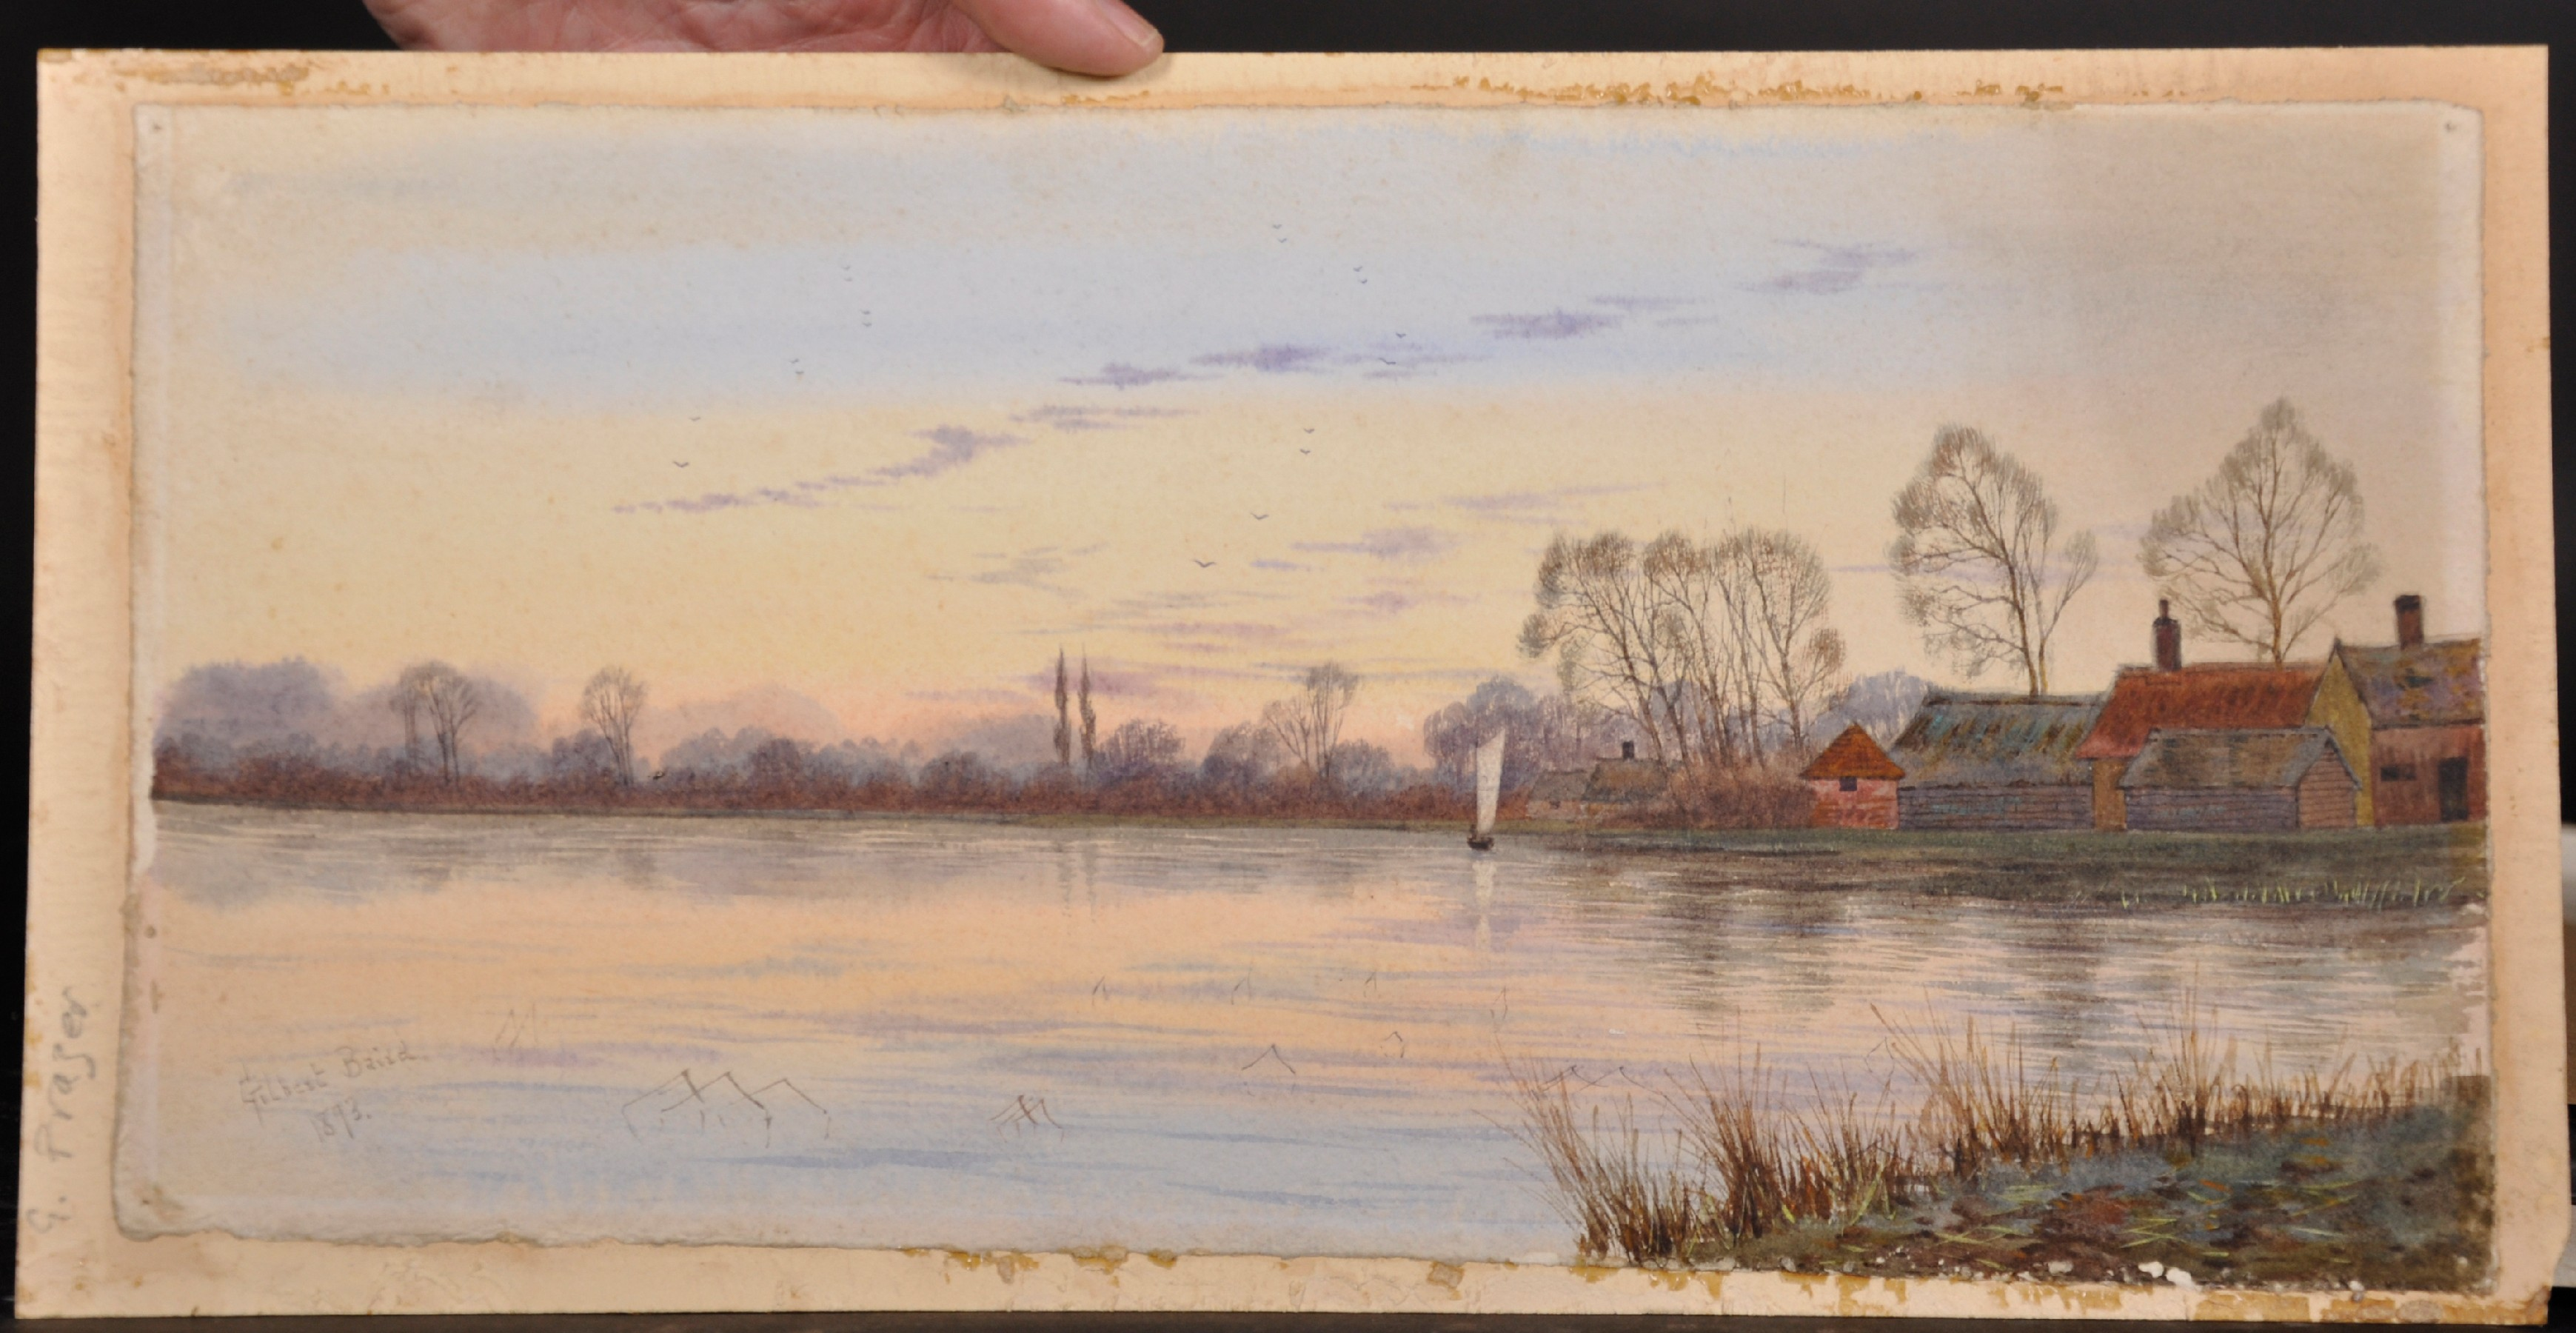 Gilbert Baird Fraser (1866-1947) British. A River Landscape, with a Sailing Boat, and Cottages in - Image 2 of 4